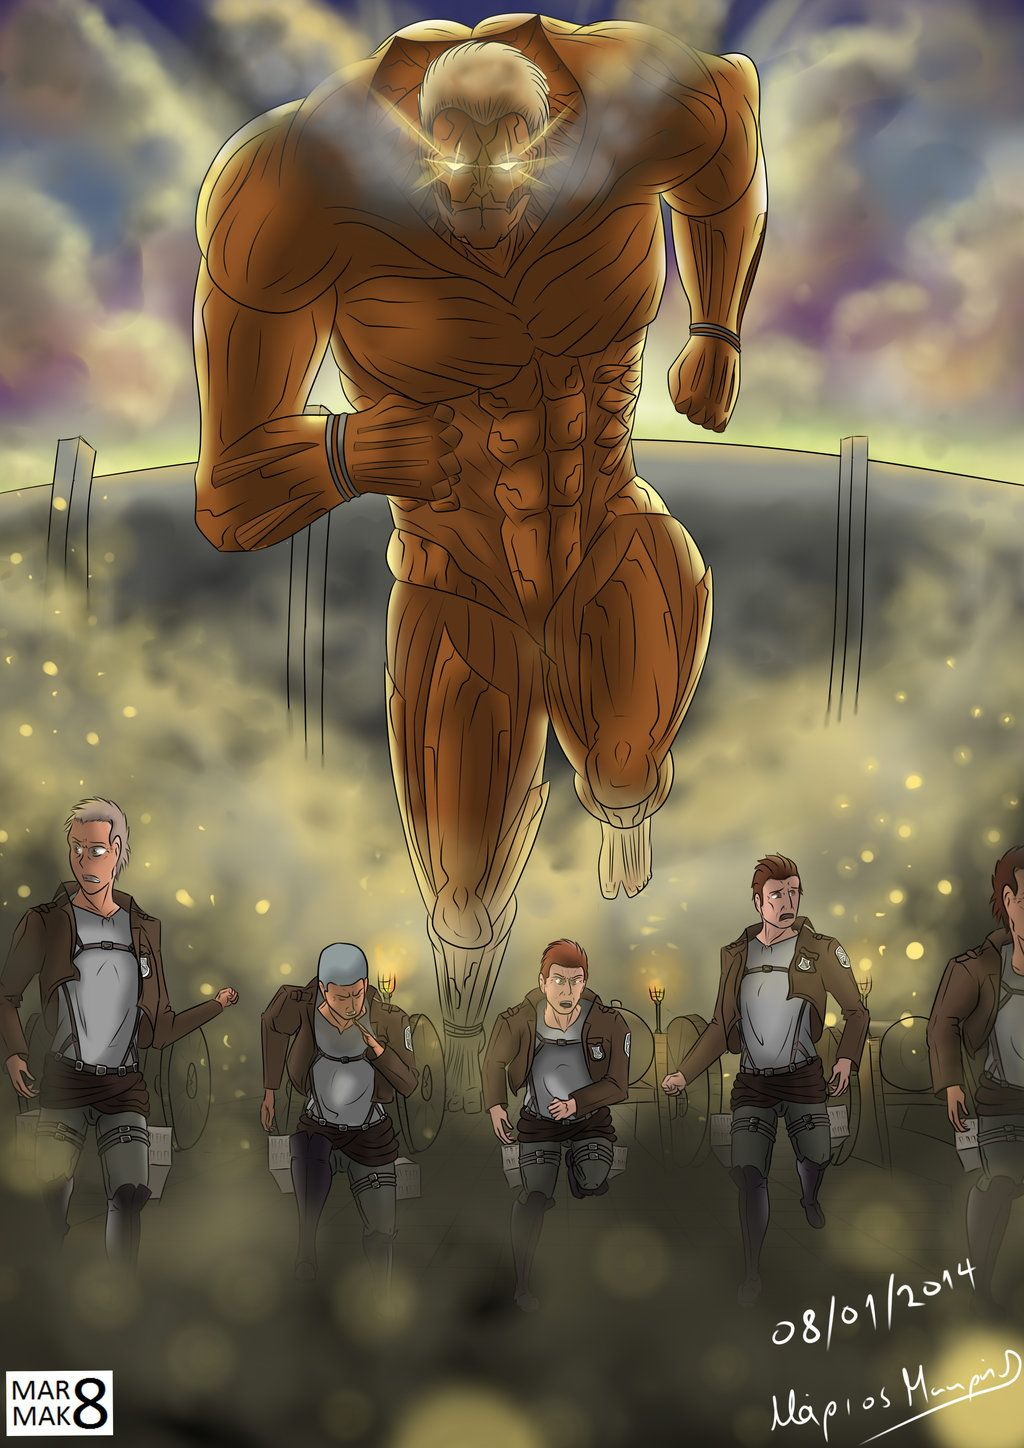 Download attack on titan 2 for windows & read reviews. Top Attack On Titan Armored Titan Wallpaper - positive quotes